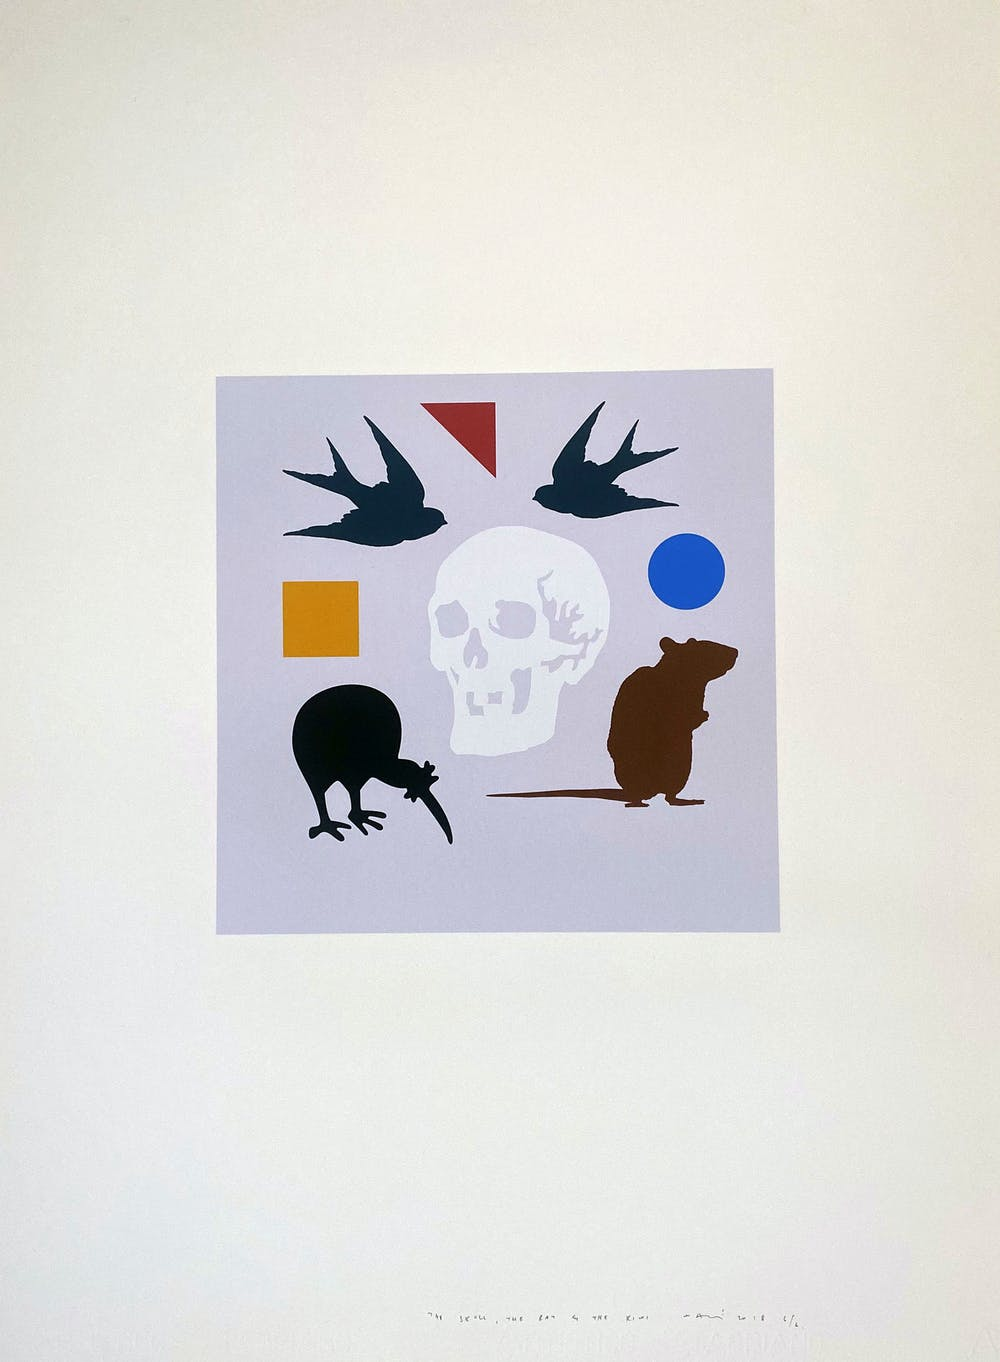 The Skull the rat and the kiwi